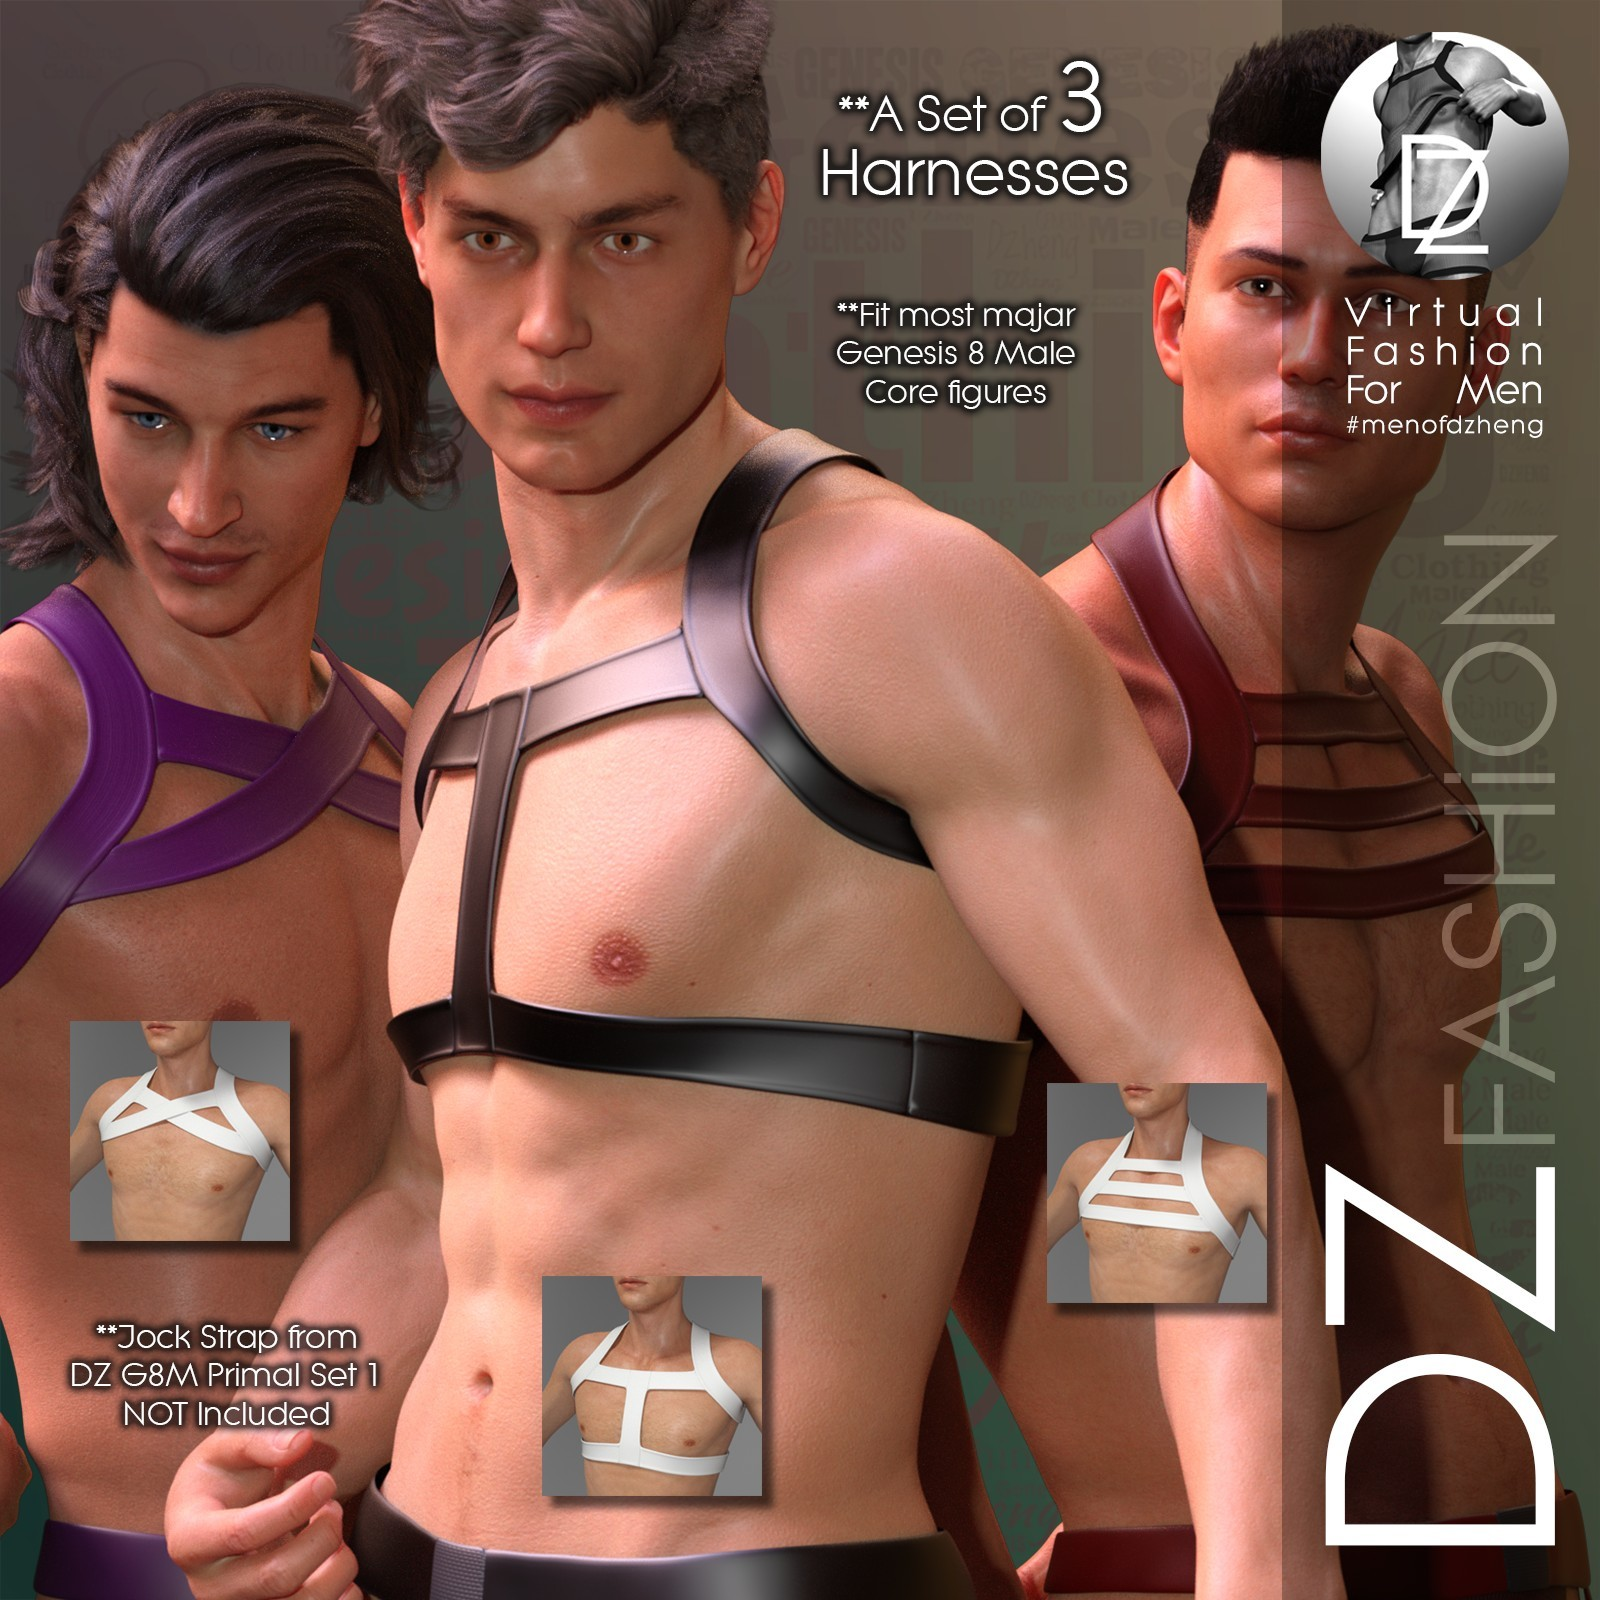 DZ G8M Primal - Harness Collection 1 by dzheng